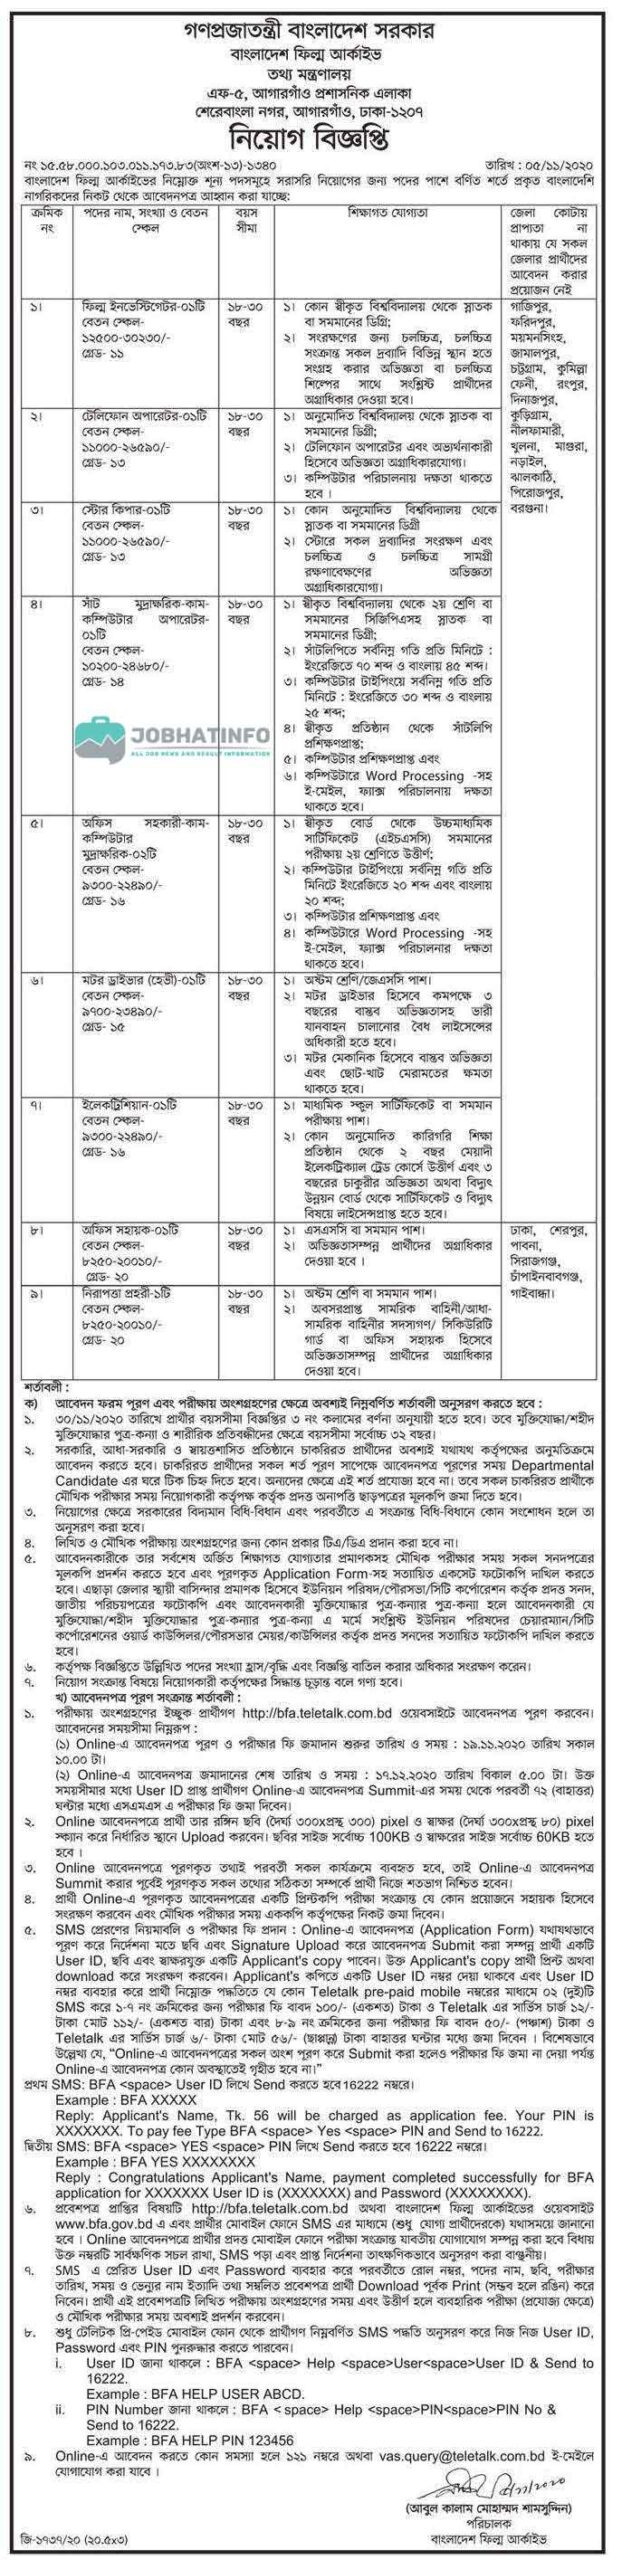 Ministry of Information Job Circular 2021 Apply from Today 2